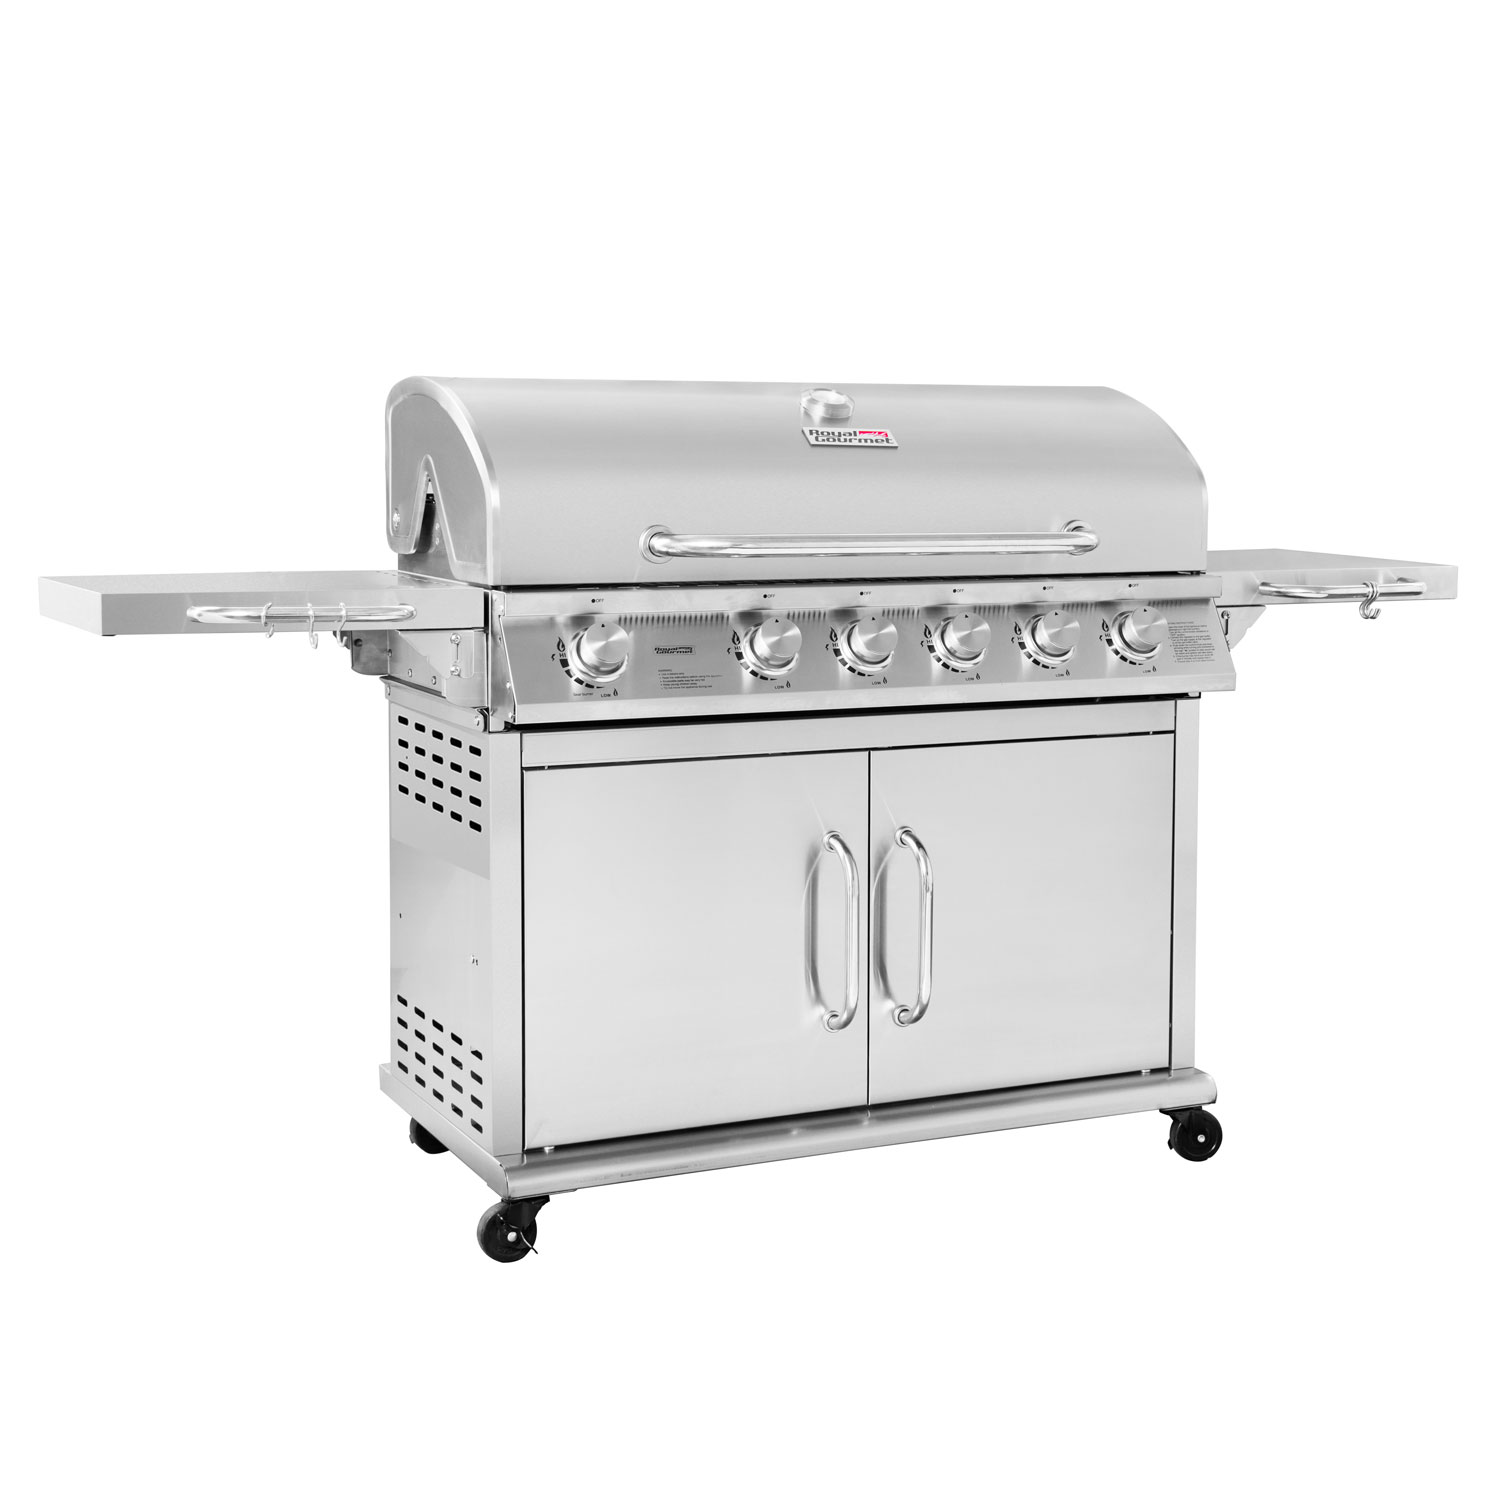 Royal Gourmet Pre- Assembled 6 Burner Stainless Steel Gas Grill with Infrared Burner by